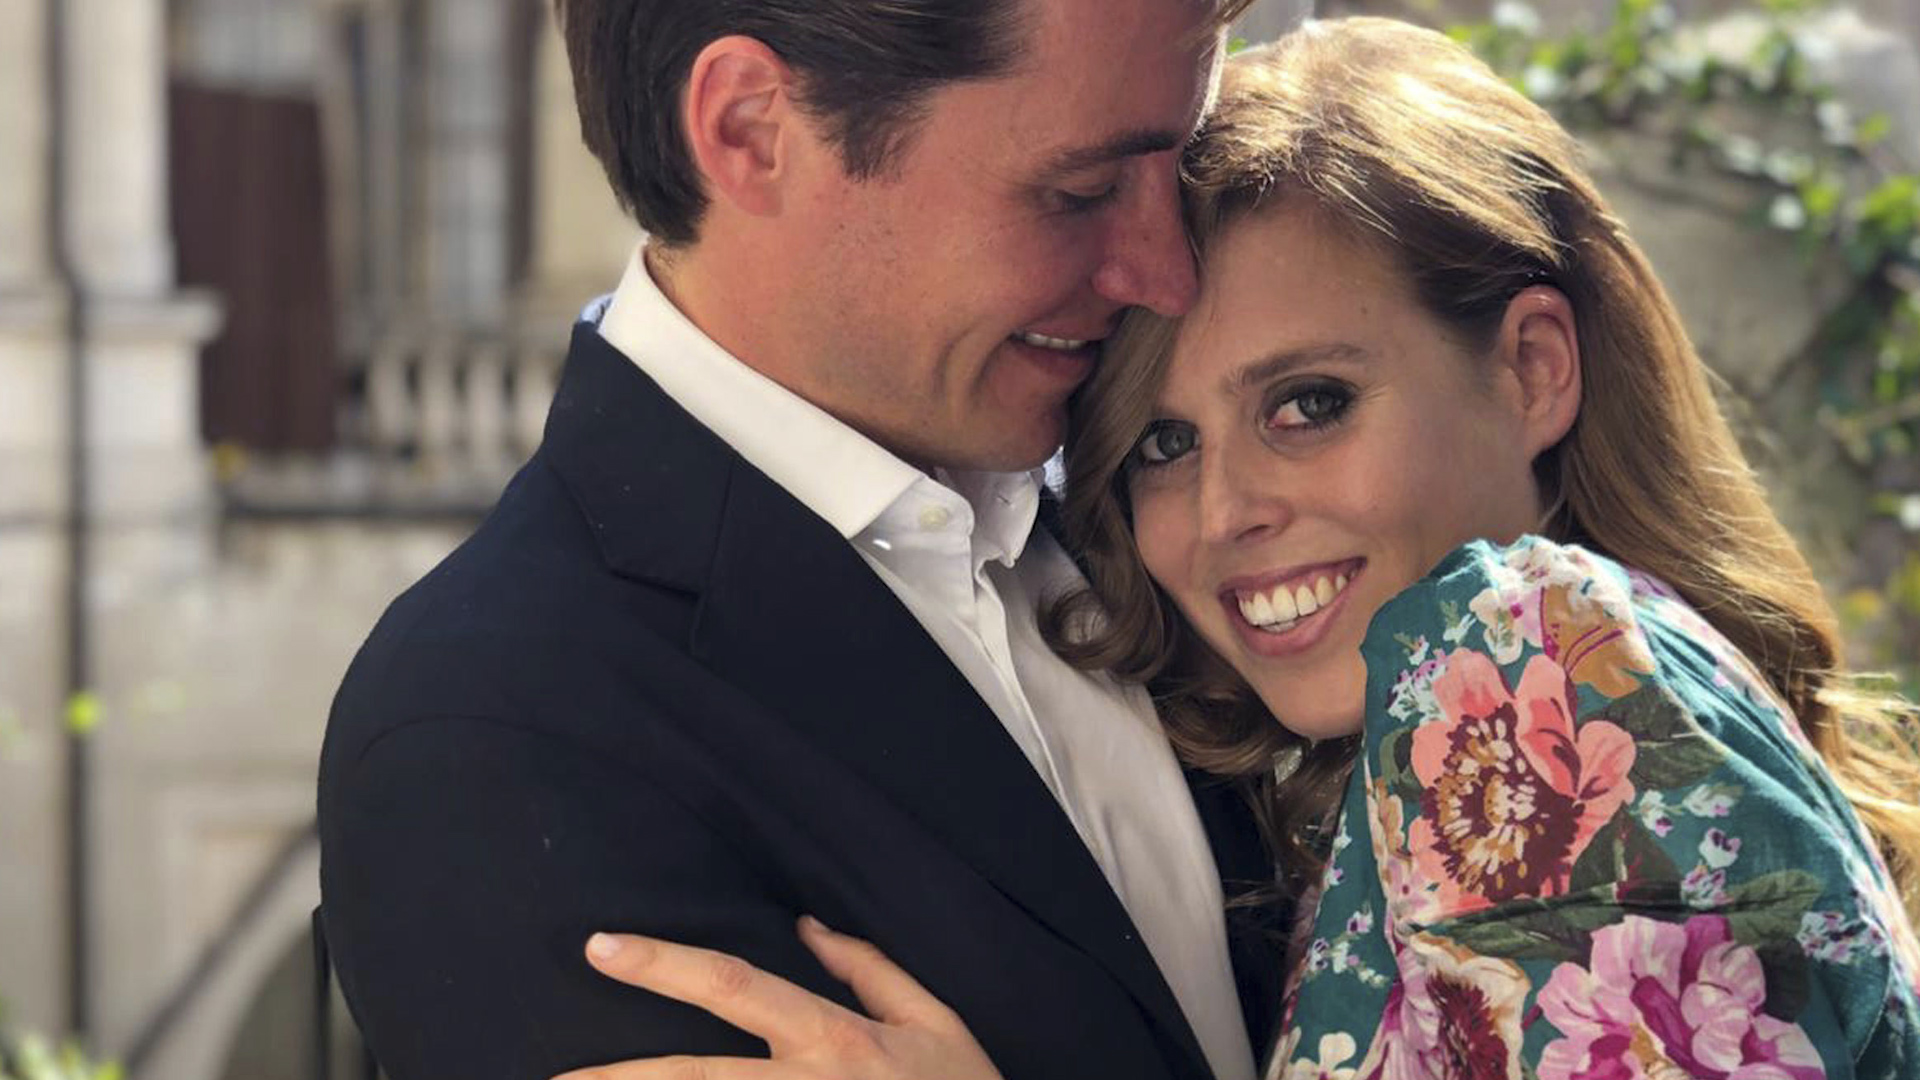 Princess Beatrice's royal wedding